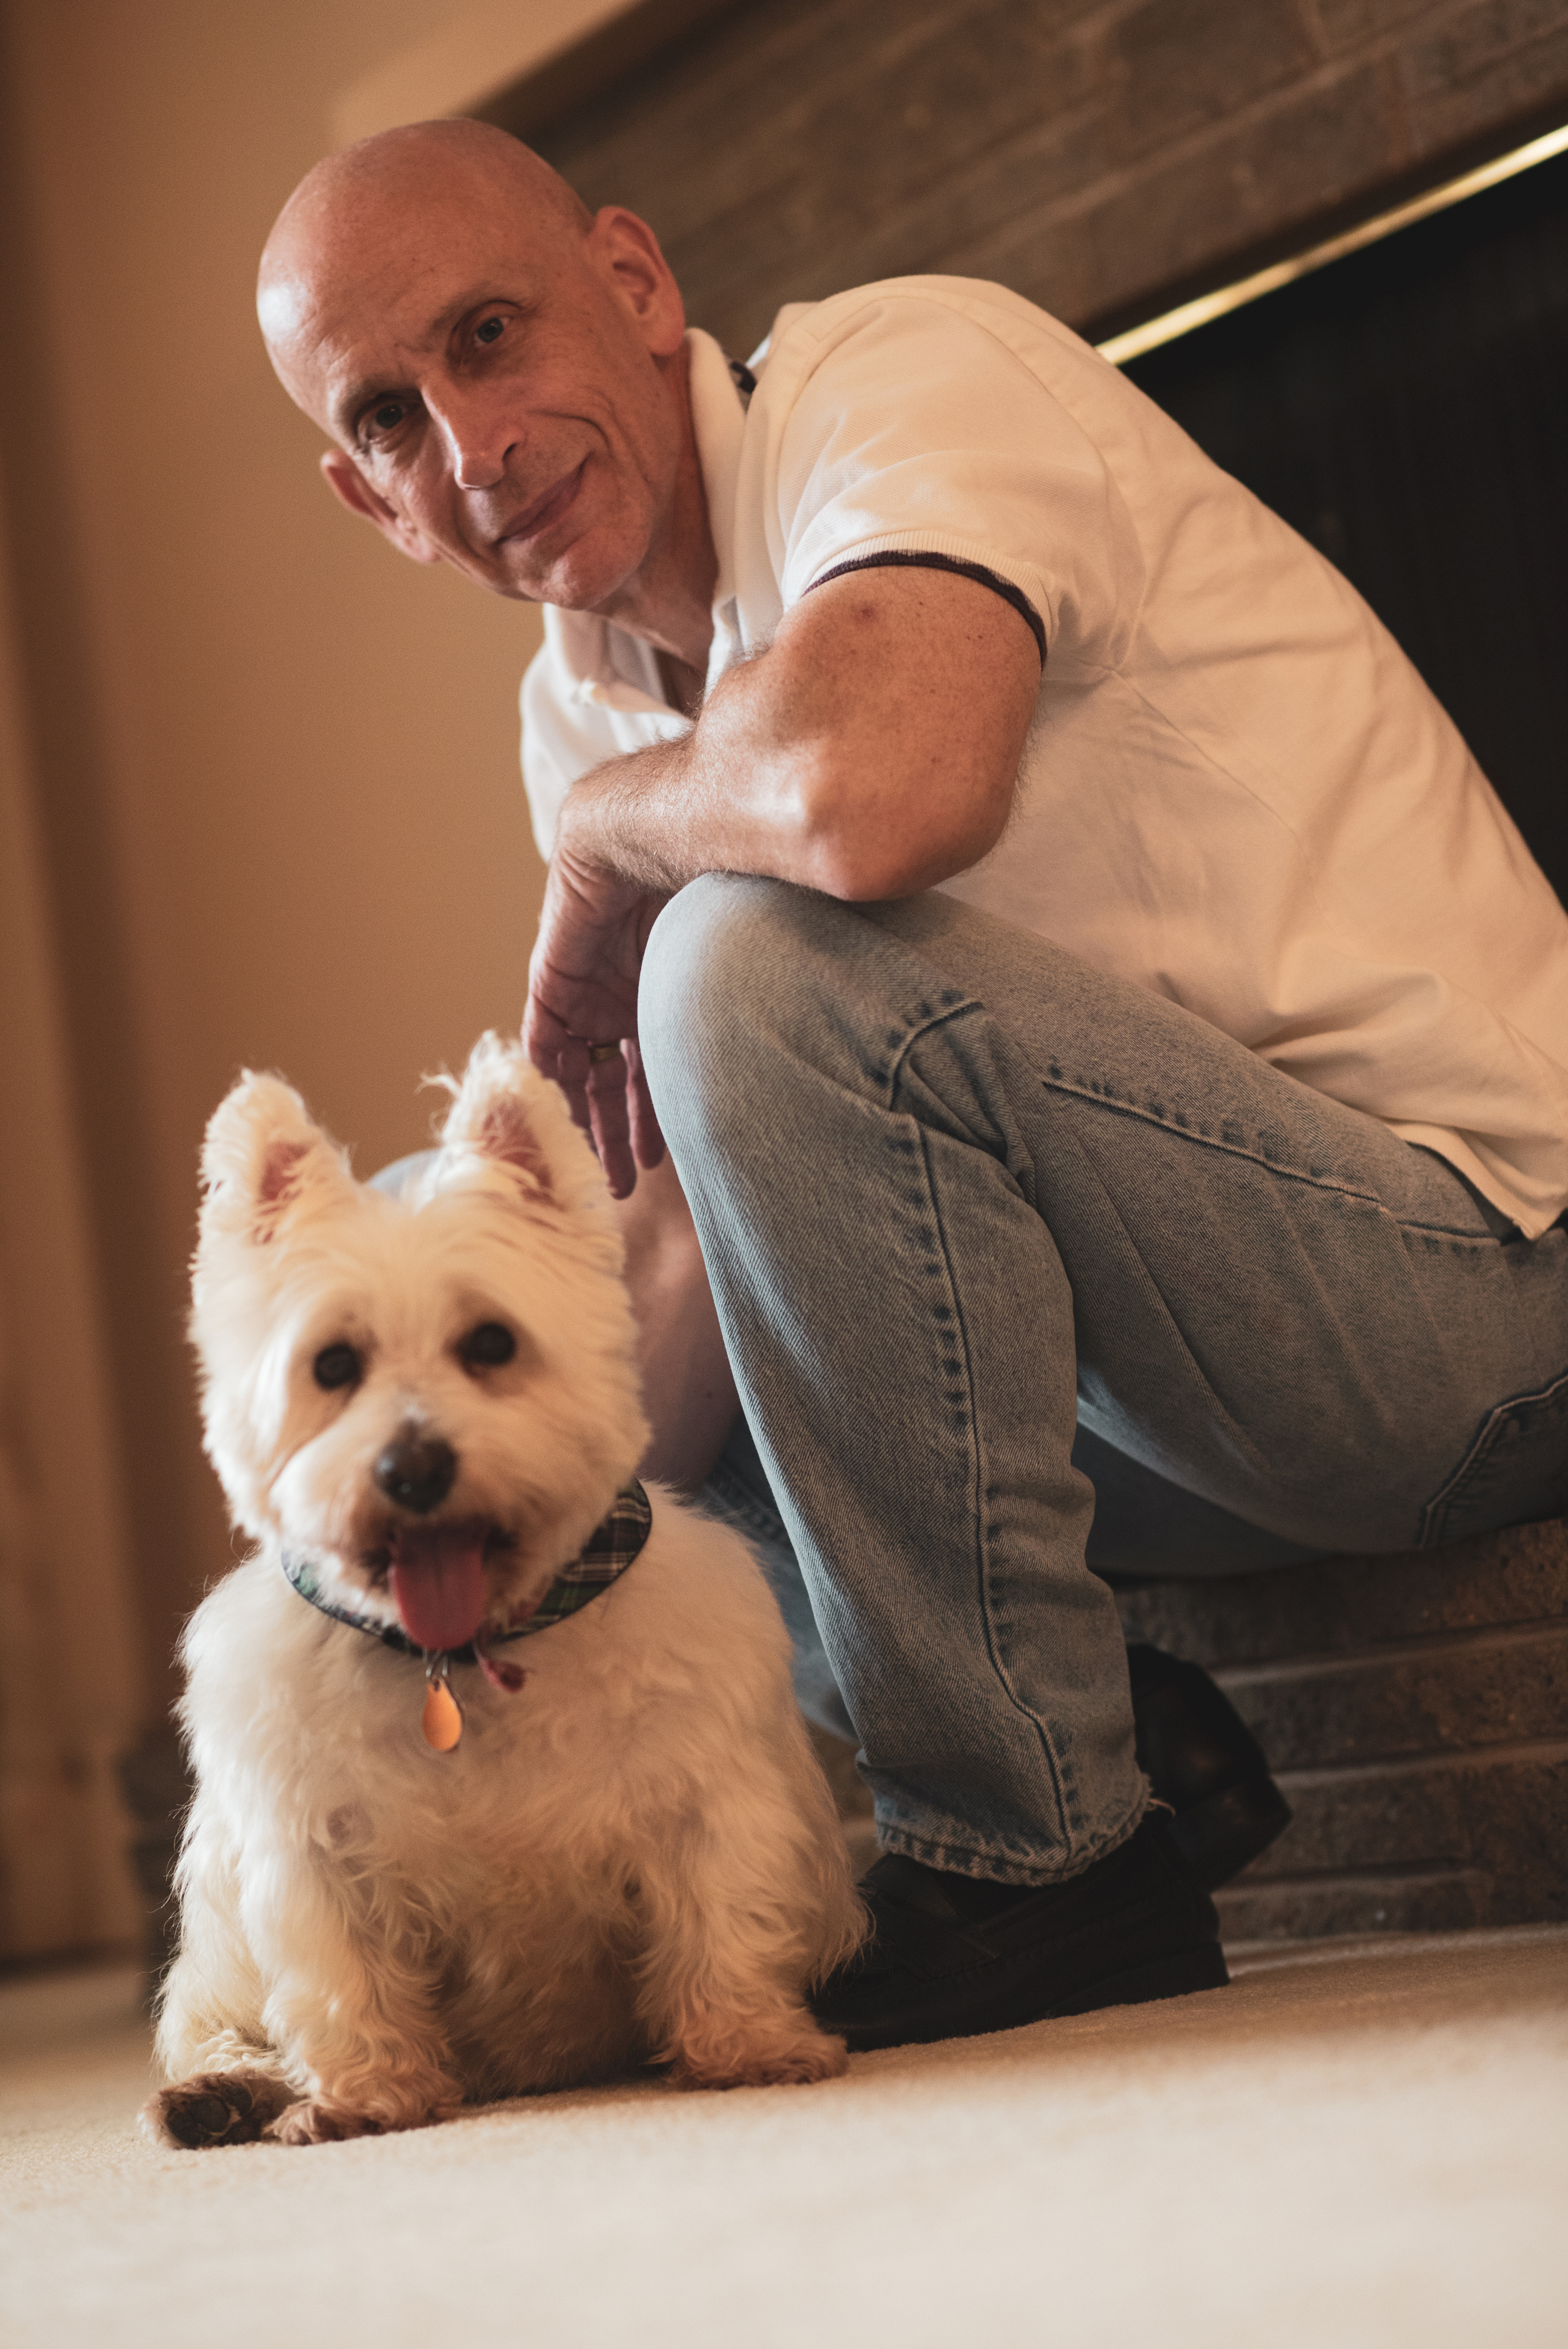 Company Mascot and Chairman of the Bone, Roxie O'Donnell, with Assistant, Barry Lee Cohen